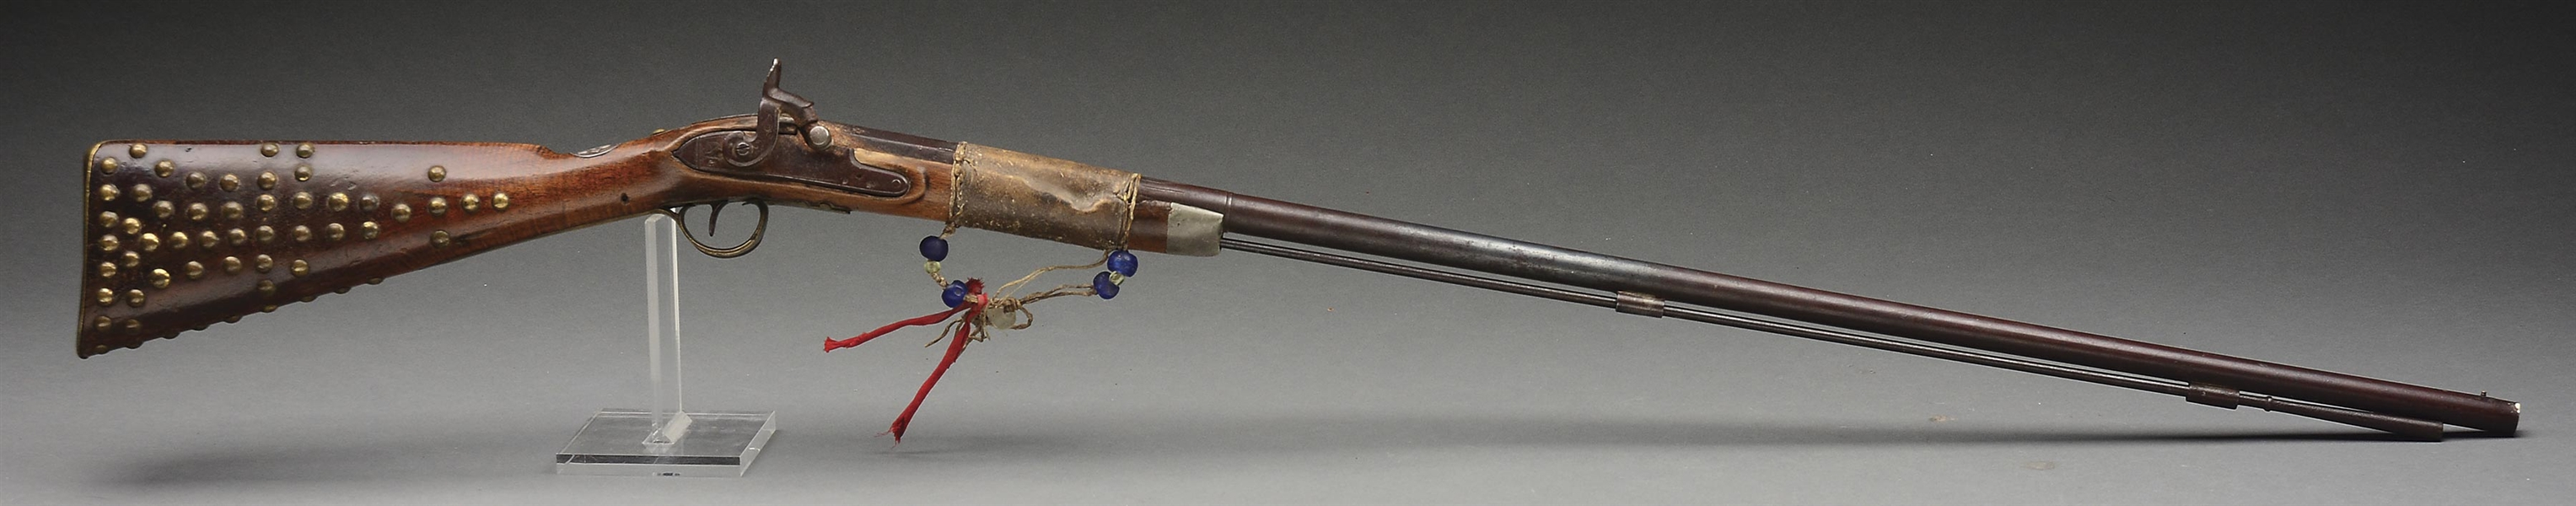 (A) RARE AND DOCUMENTED AUTHENTIC WHEELER INDIAN CHIEFS TRADE MUSKET.